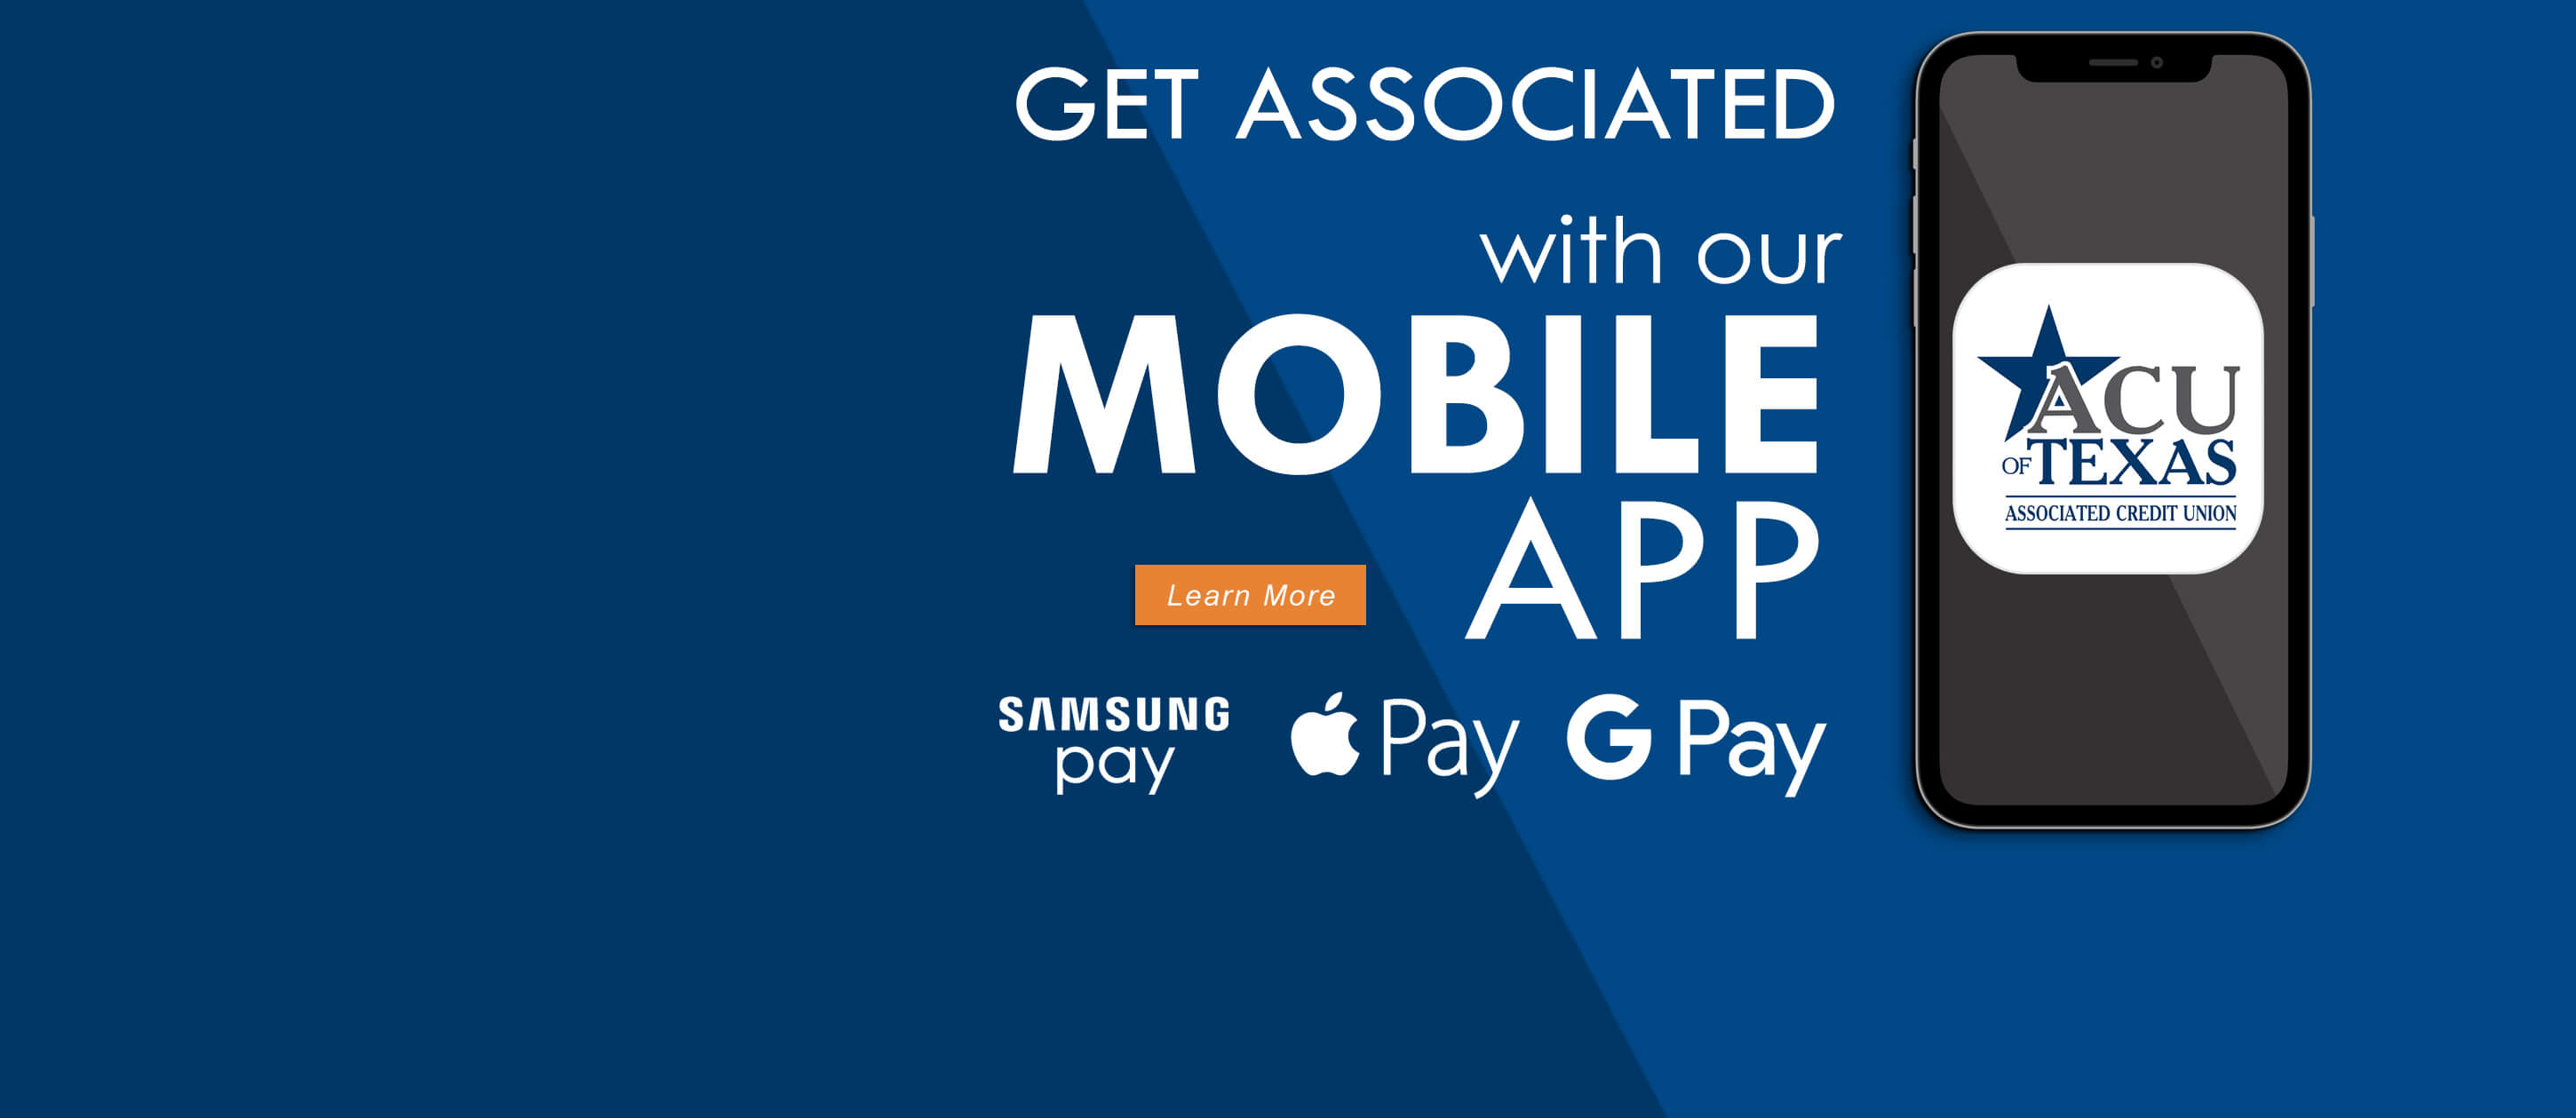 Get associated with our Mobile App. Samsung Pay. Apple Pay. Google Pay.